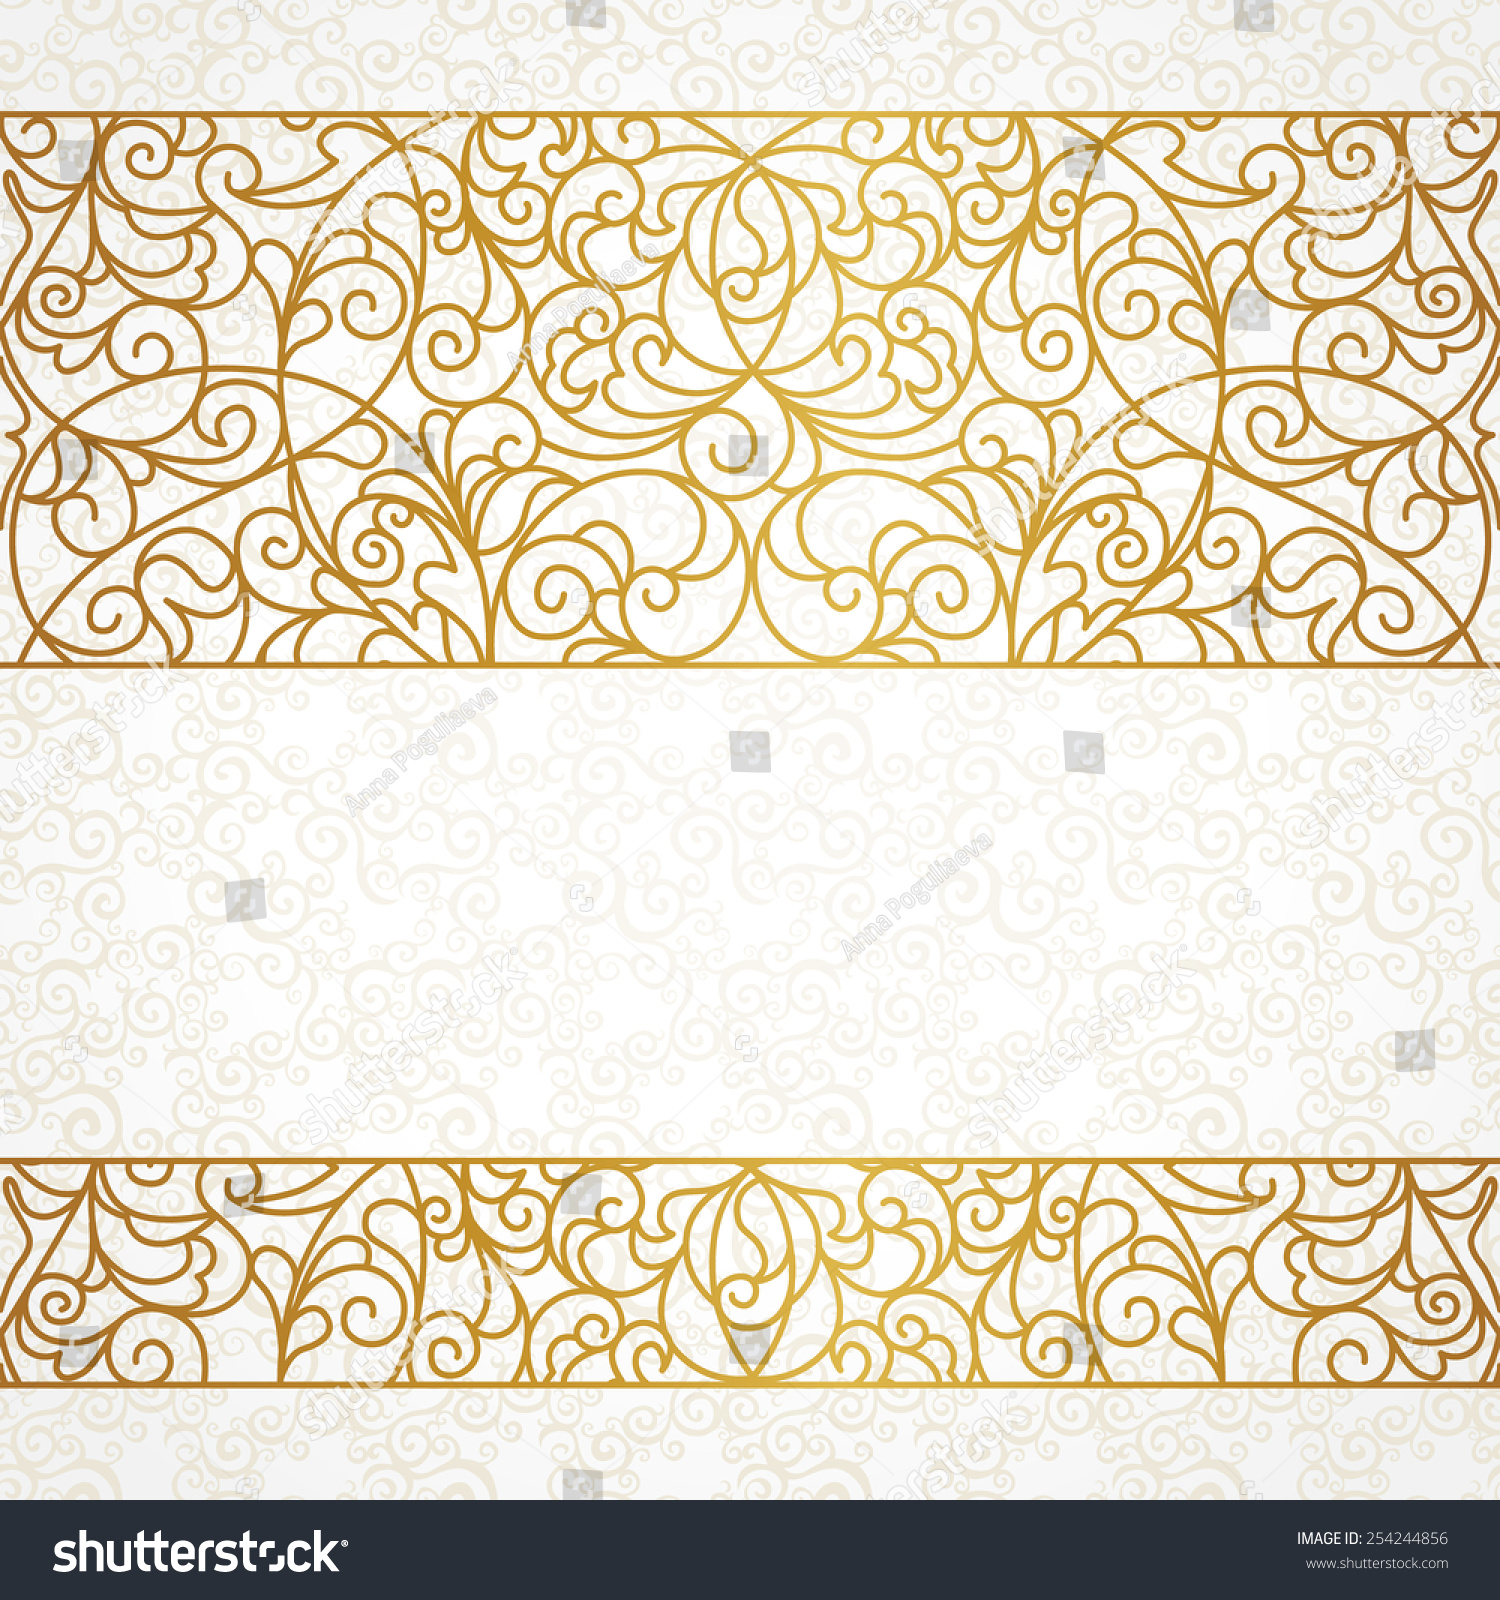 Vector Ornate Seamless Border Eastern Style Stock Vector